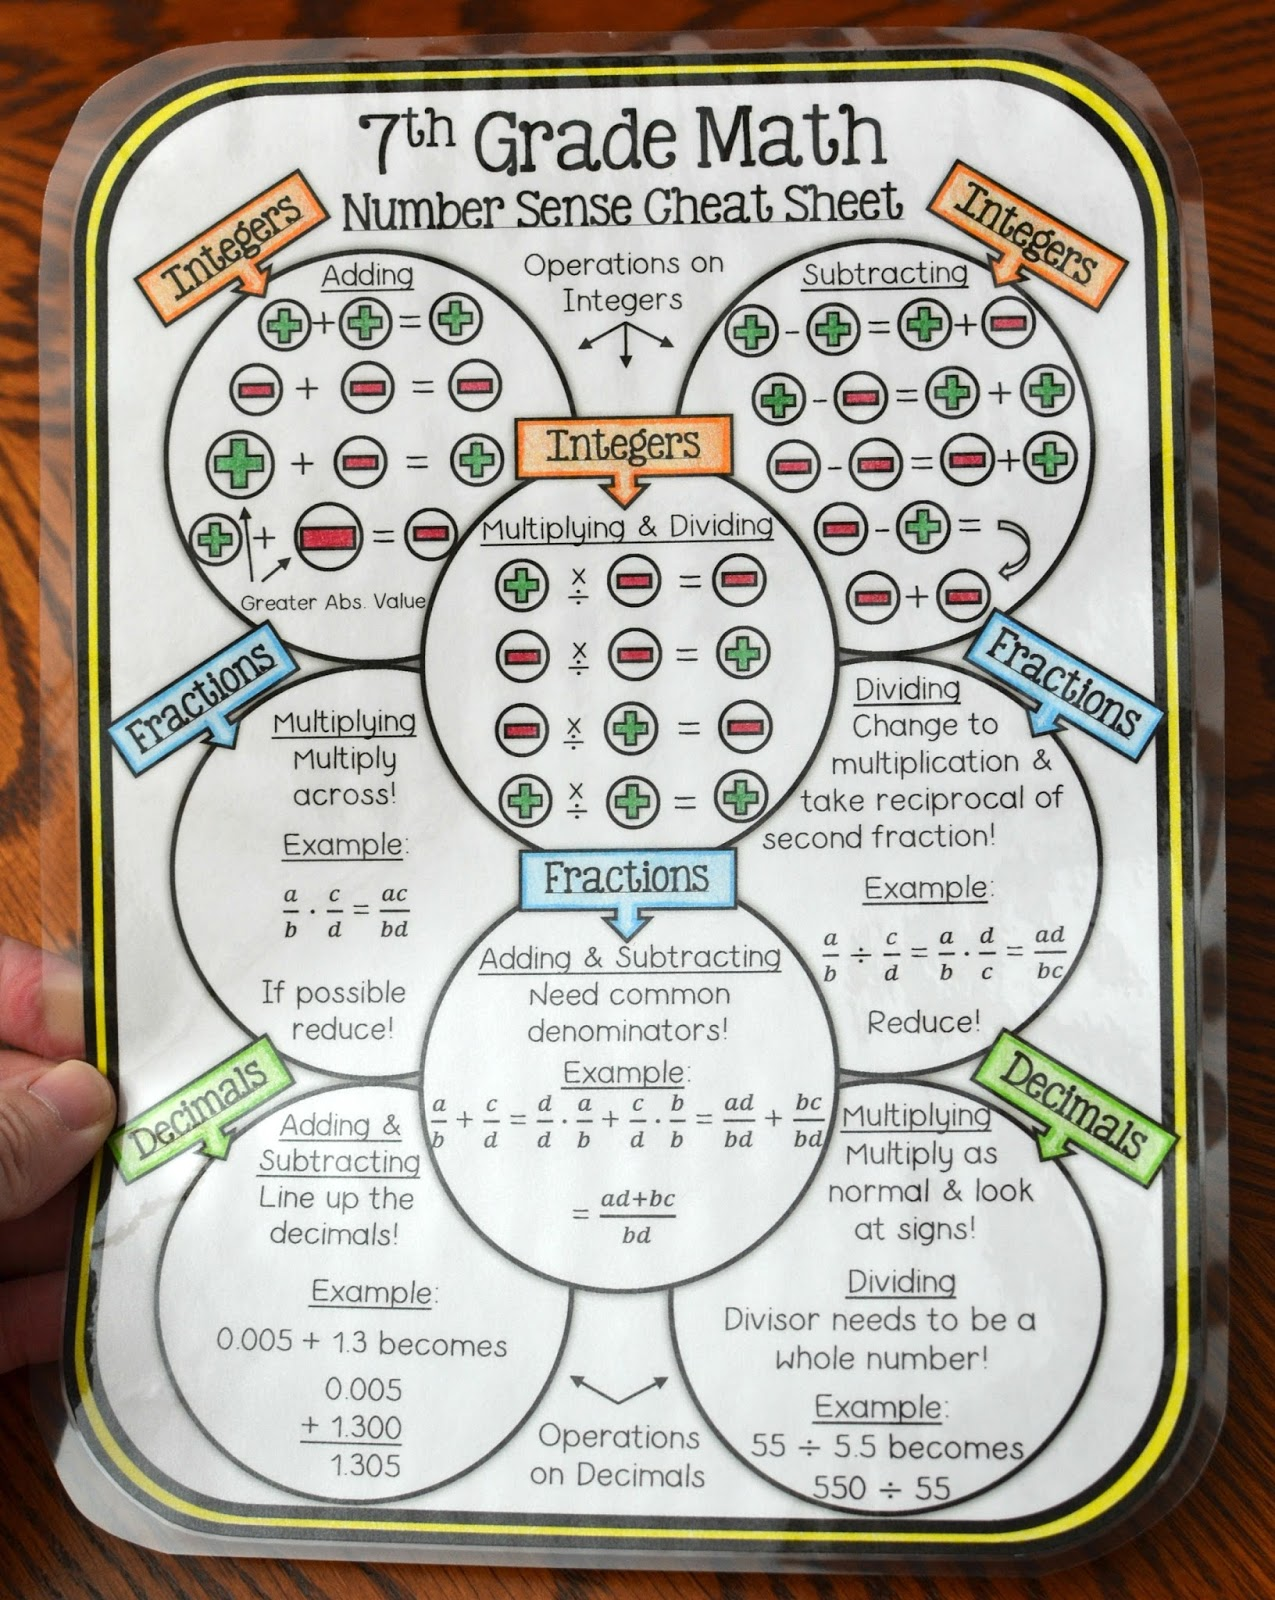 7th Grade Math Number Sense Cheat Sheet